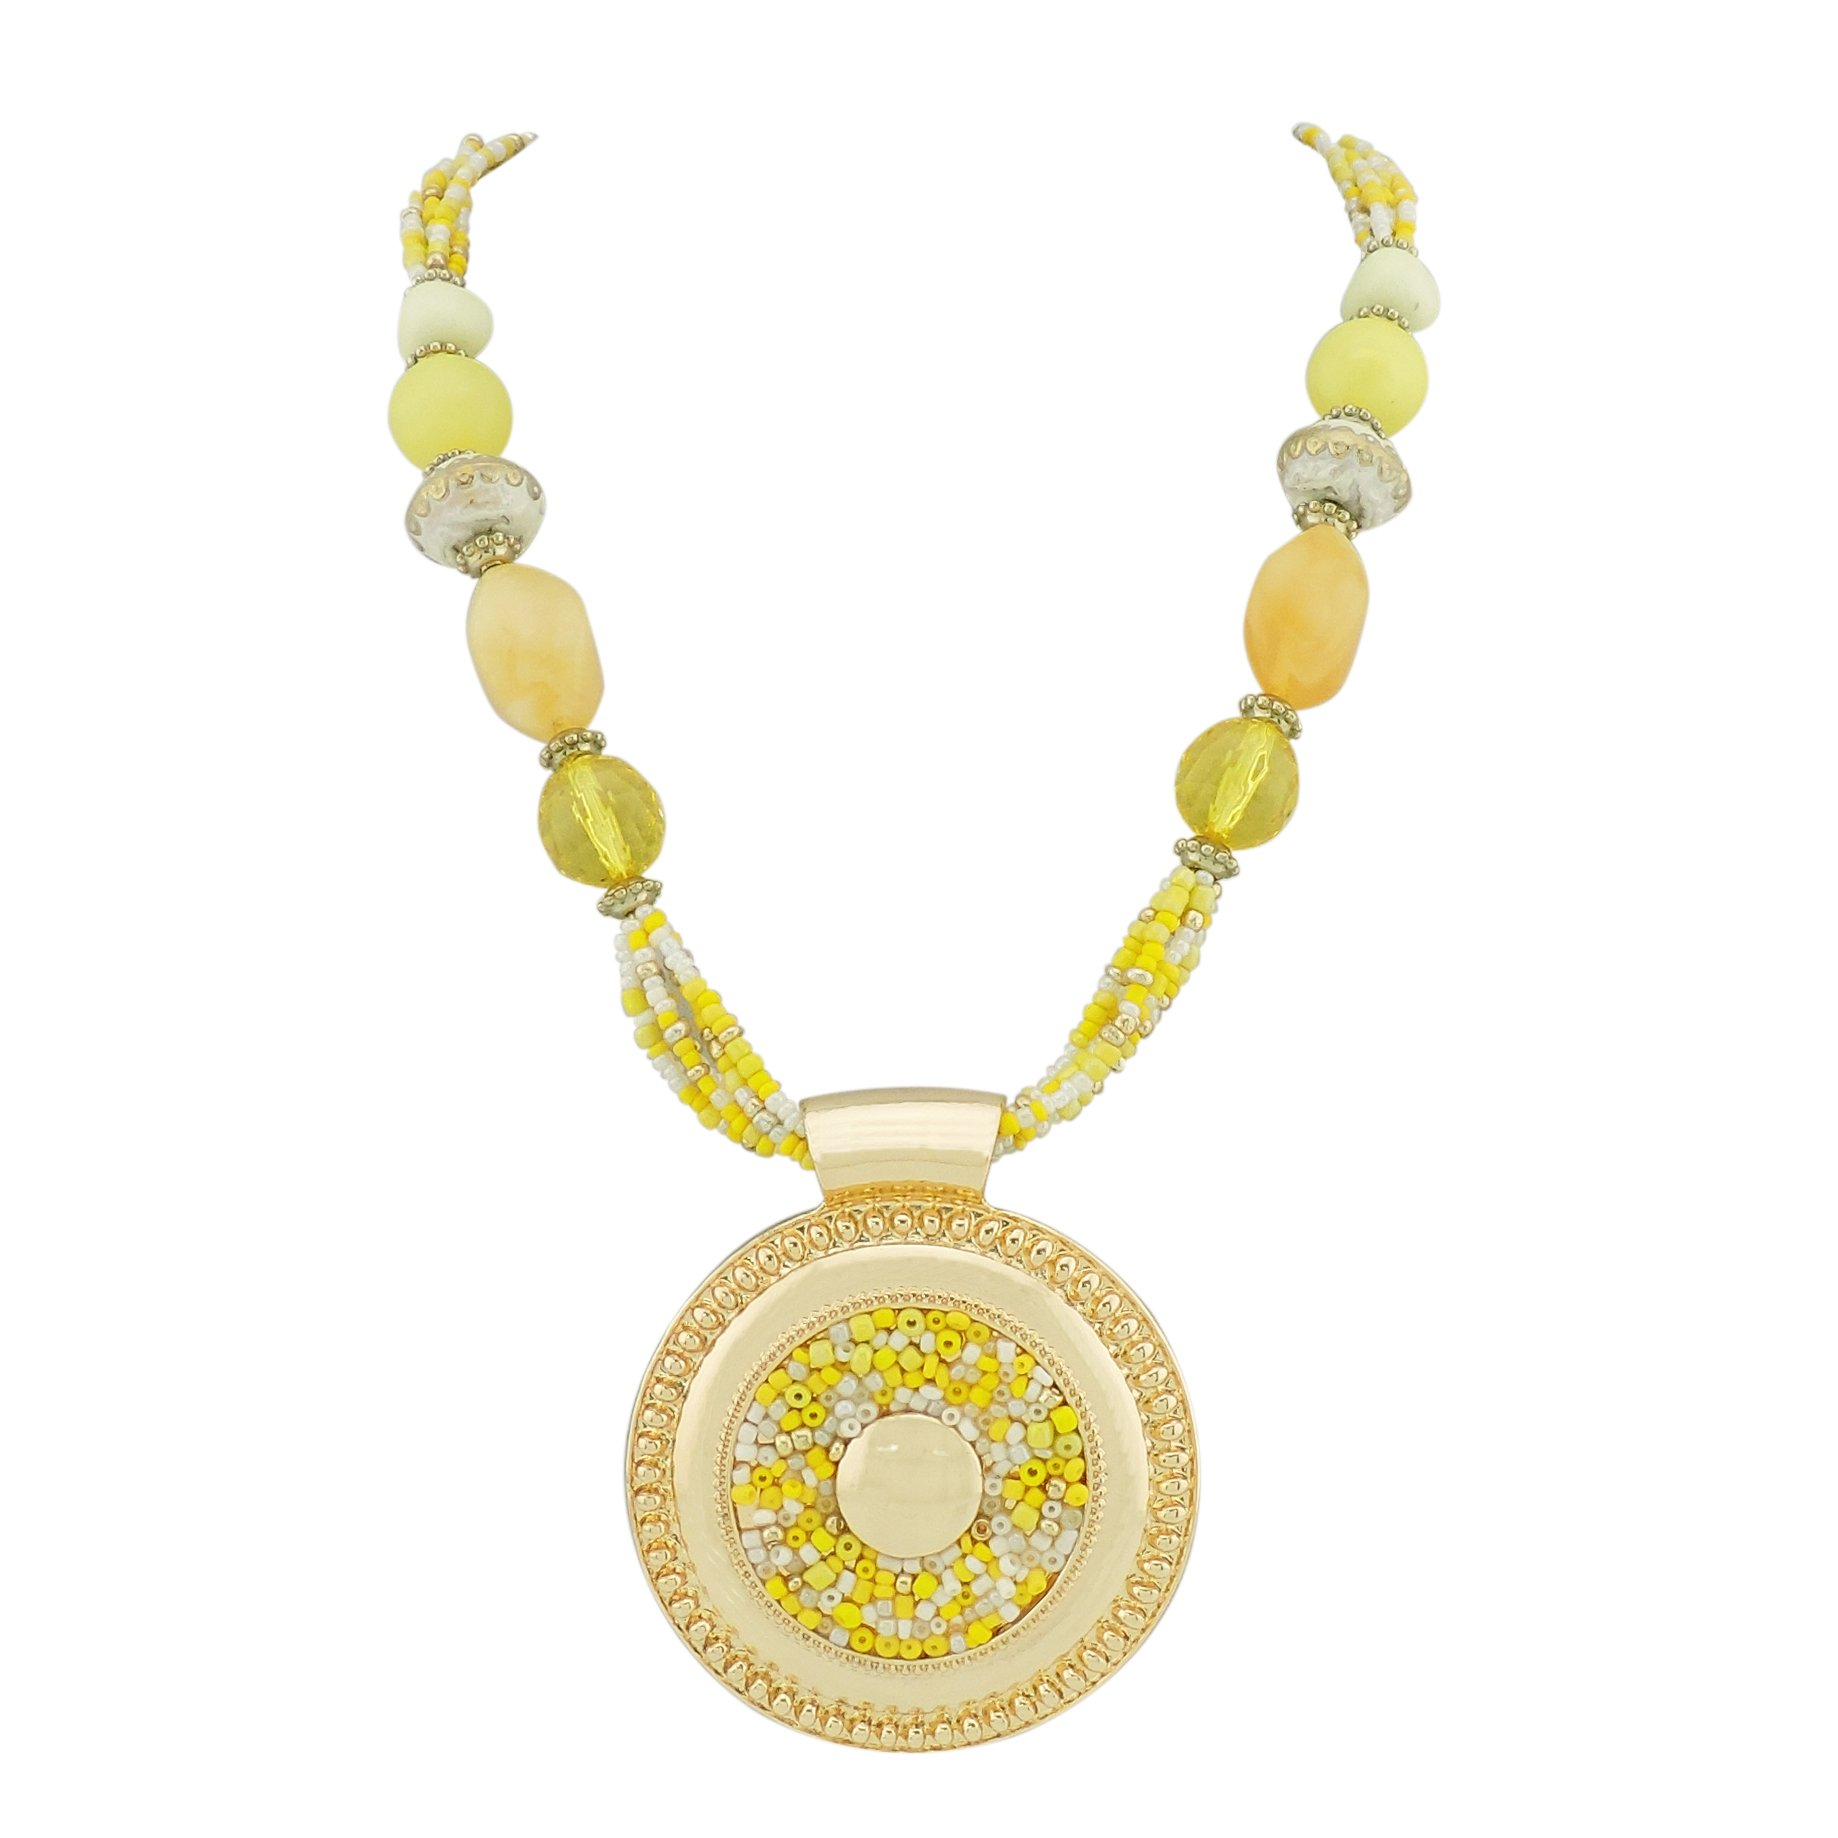 BOCAR Statement Seed Beads Chunky Collar Pendant Necklace (NK-10343-yellow)